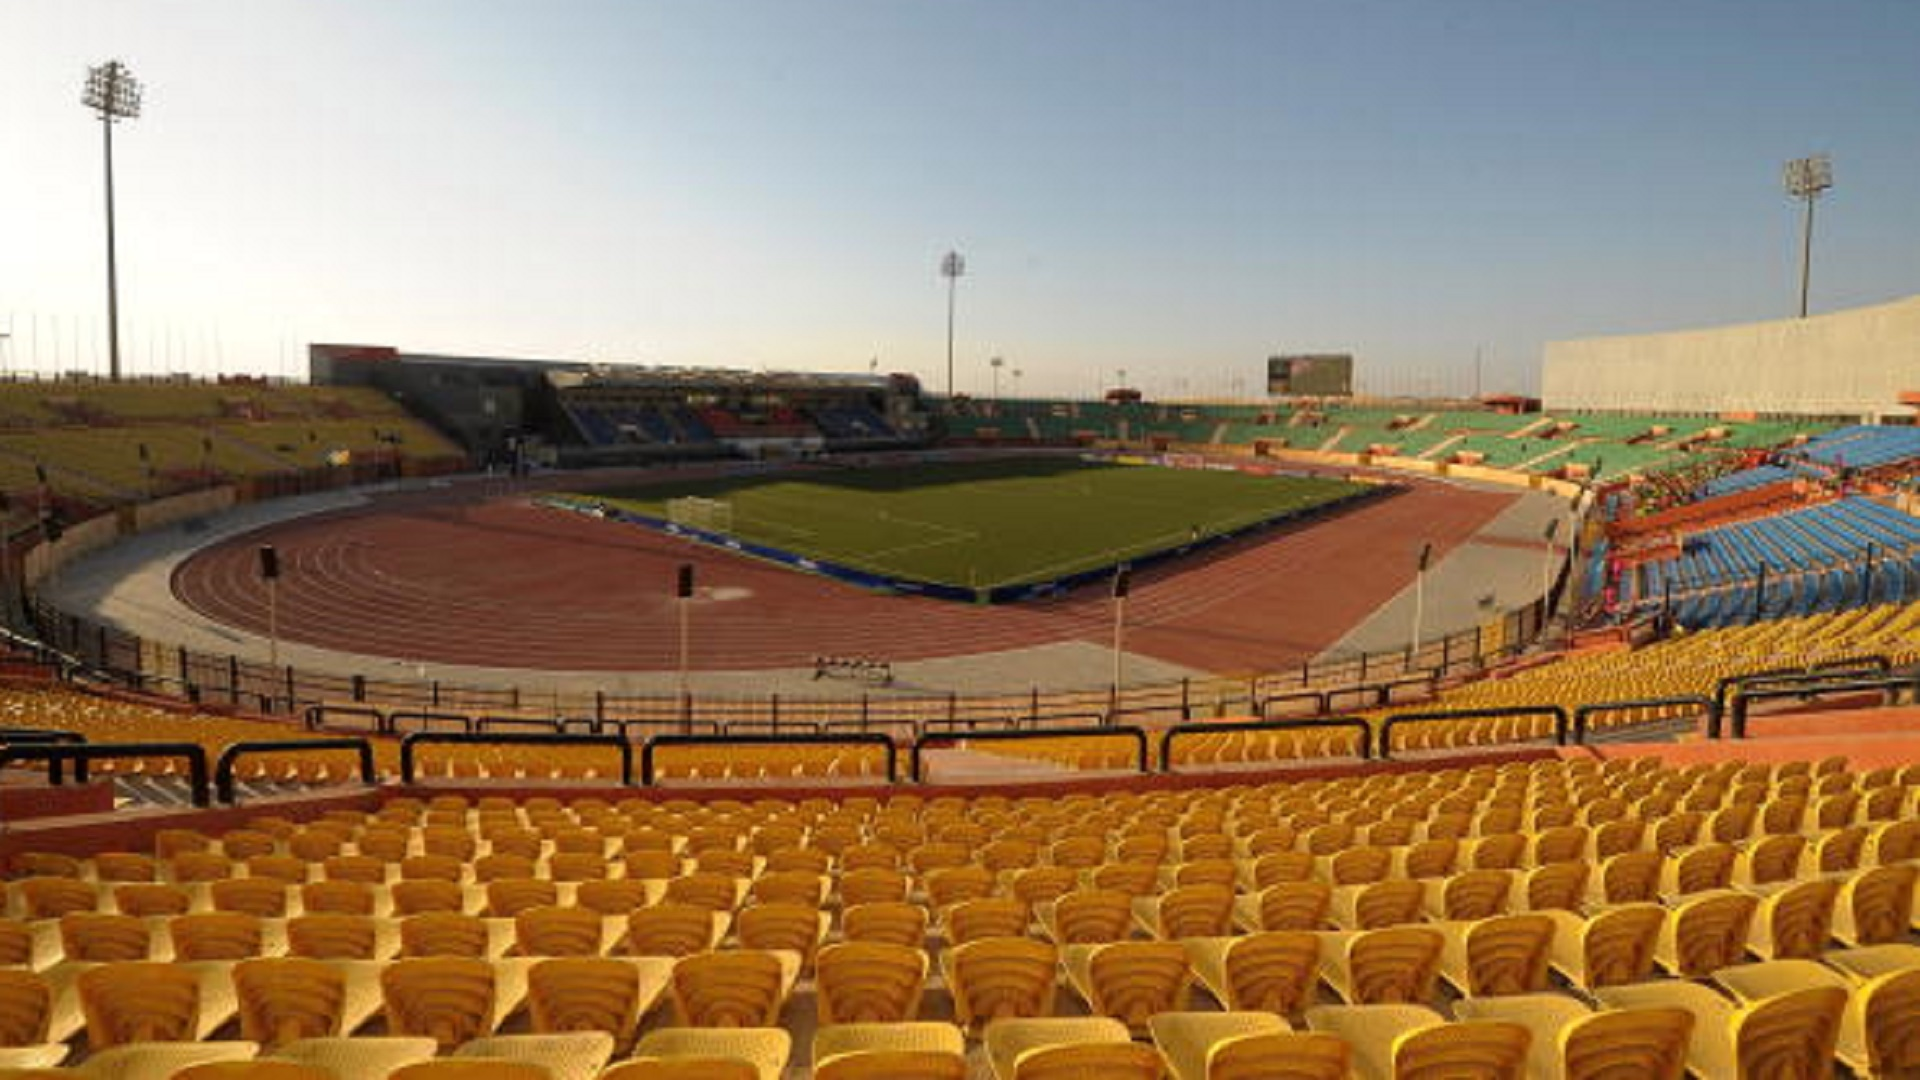 A general view of the outside of the Al Salam Stadium